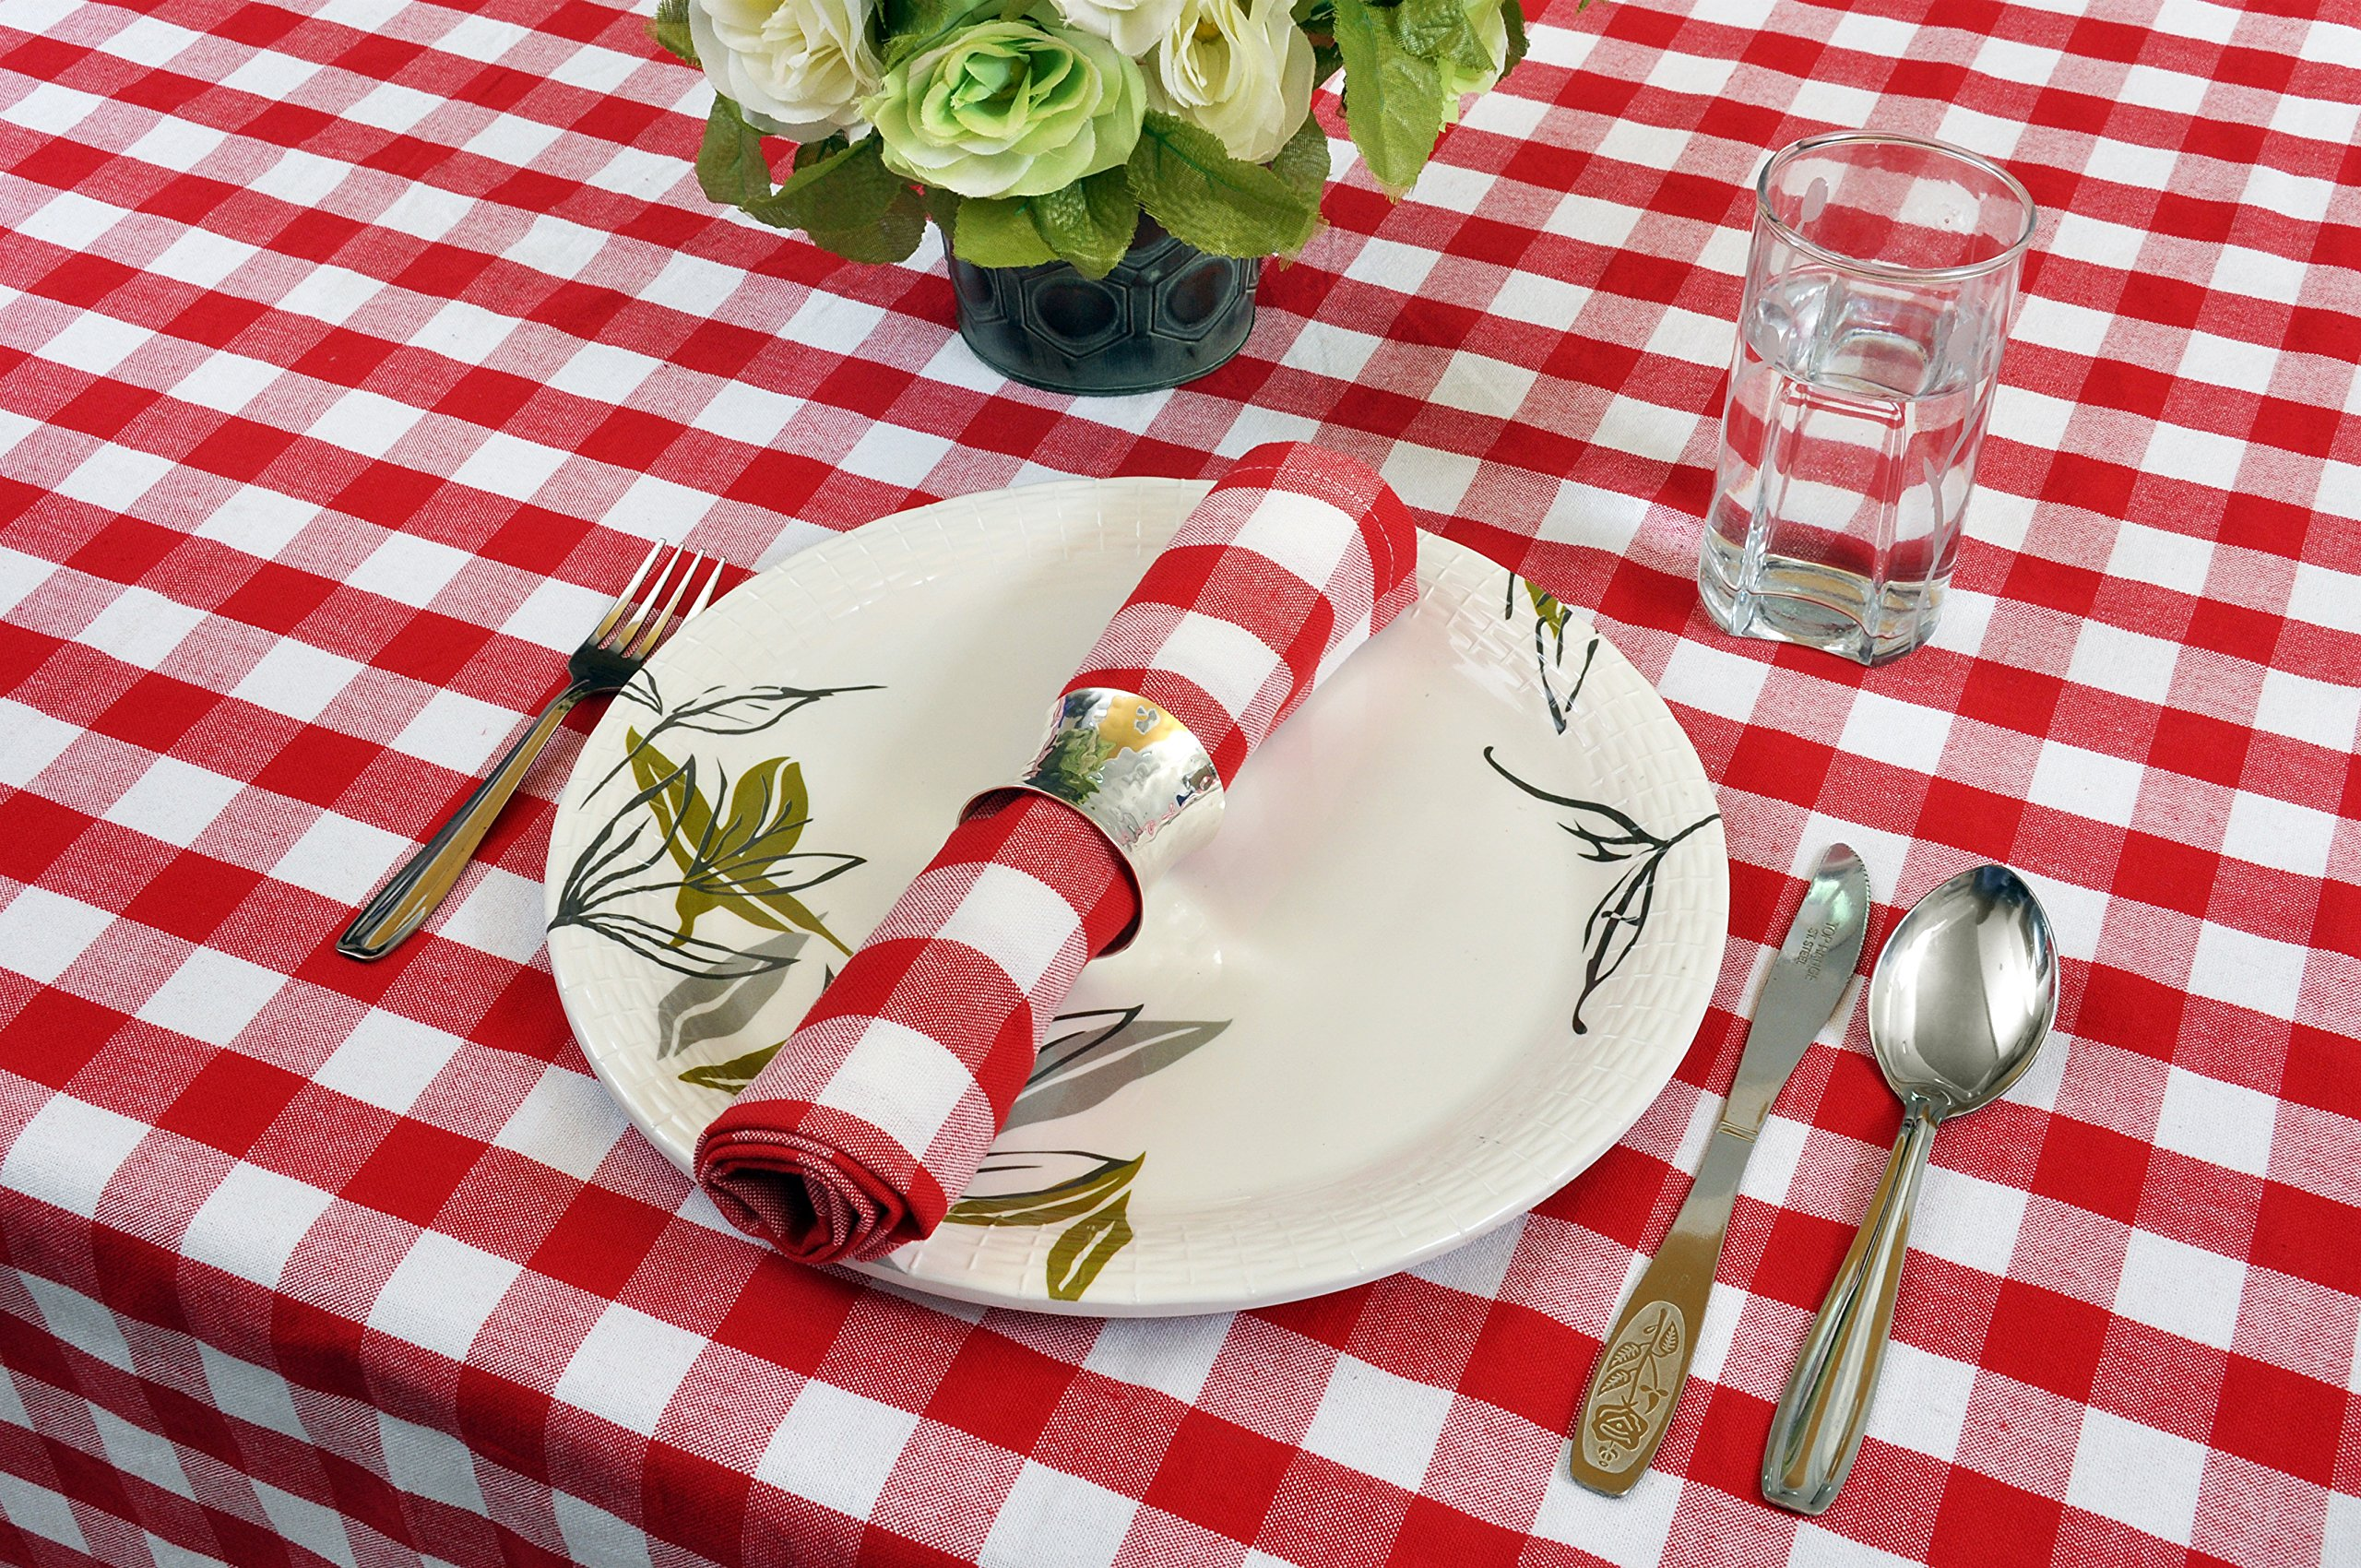 Yourtablecloth 100% Cotton Checkered Buffalo Plaid Tablecloth –for Home, Restaurants, Cafés – Be it for Everyday Dinner Picnic or Occasions like Thanksgiving 60 x 104 Rectangle/Oblong Red and White by Yourtablecloth (Image #2)